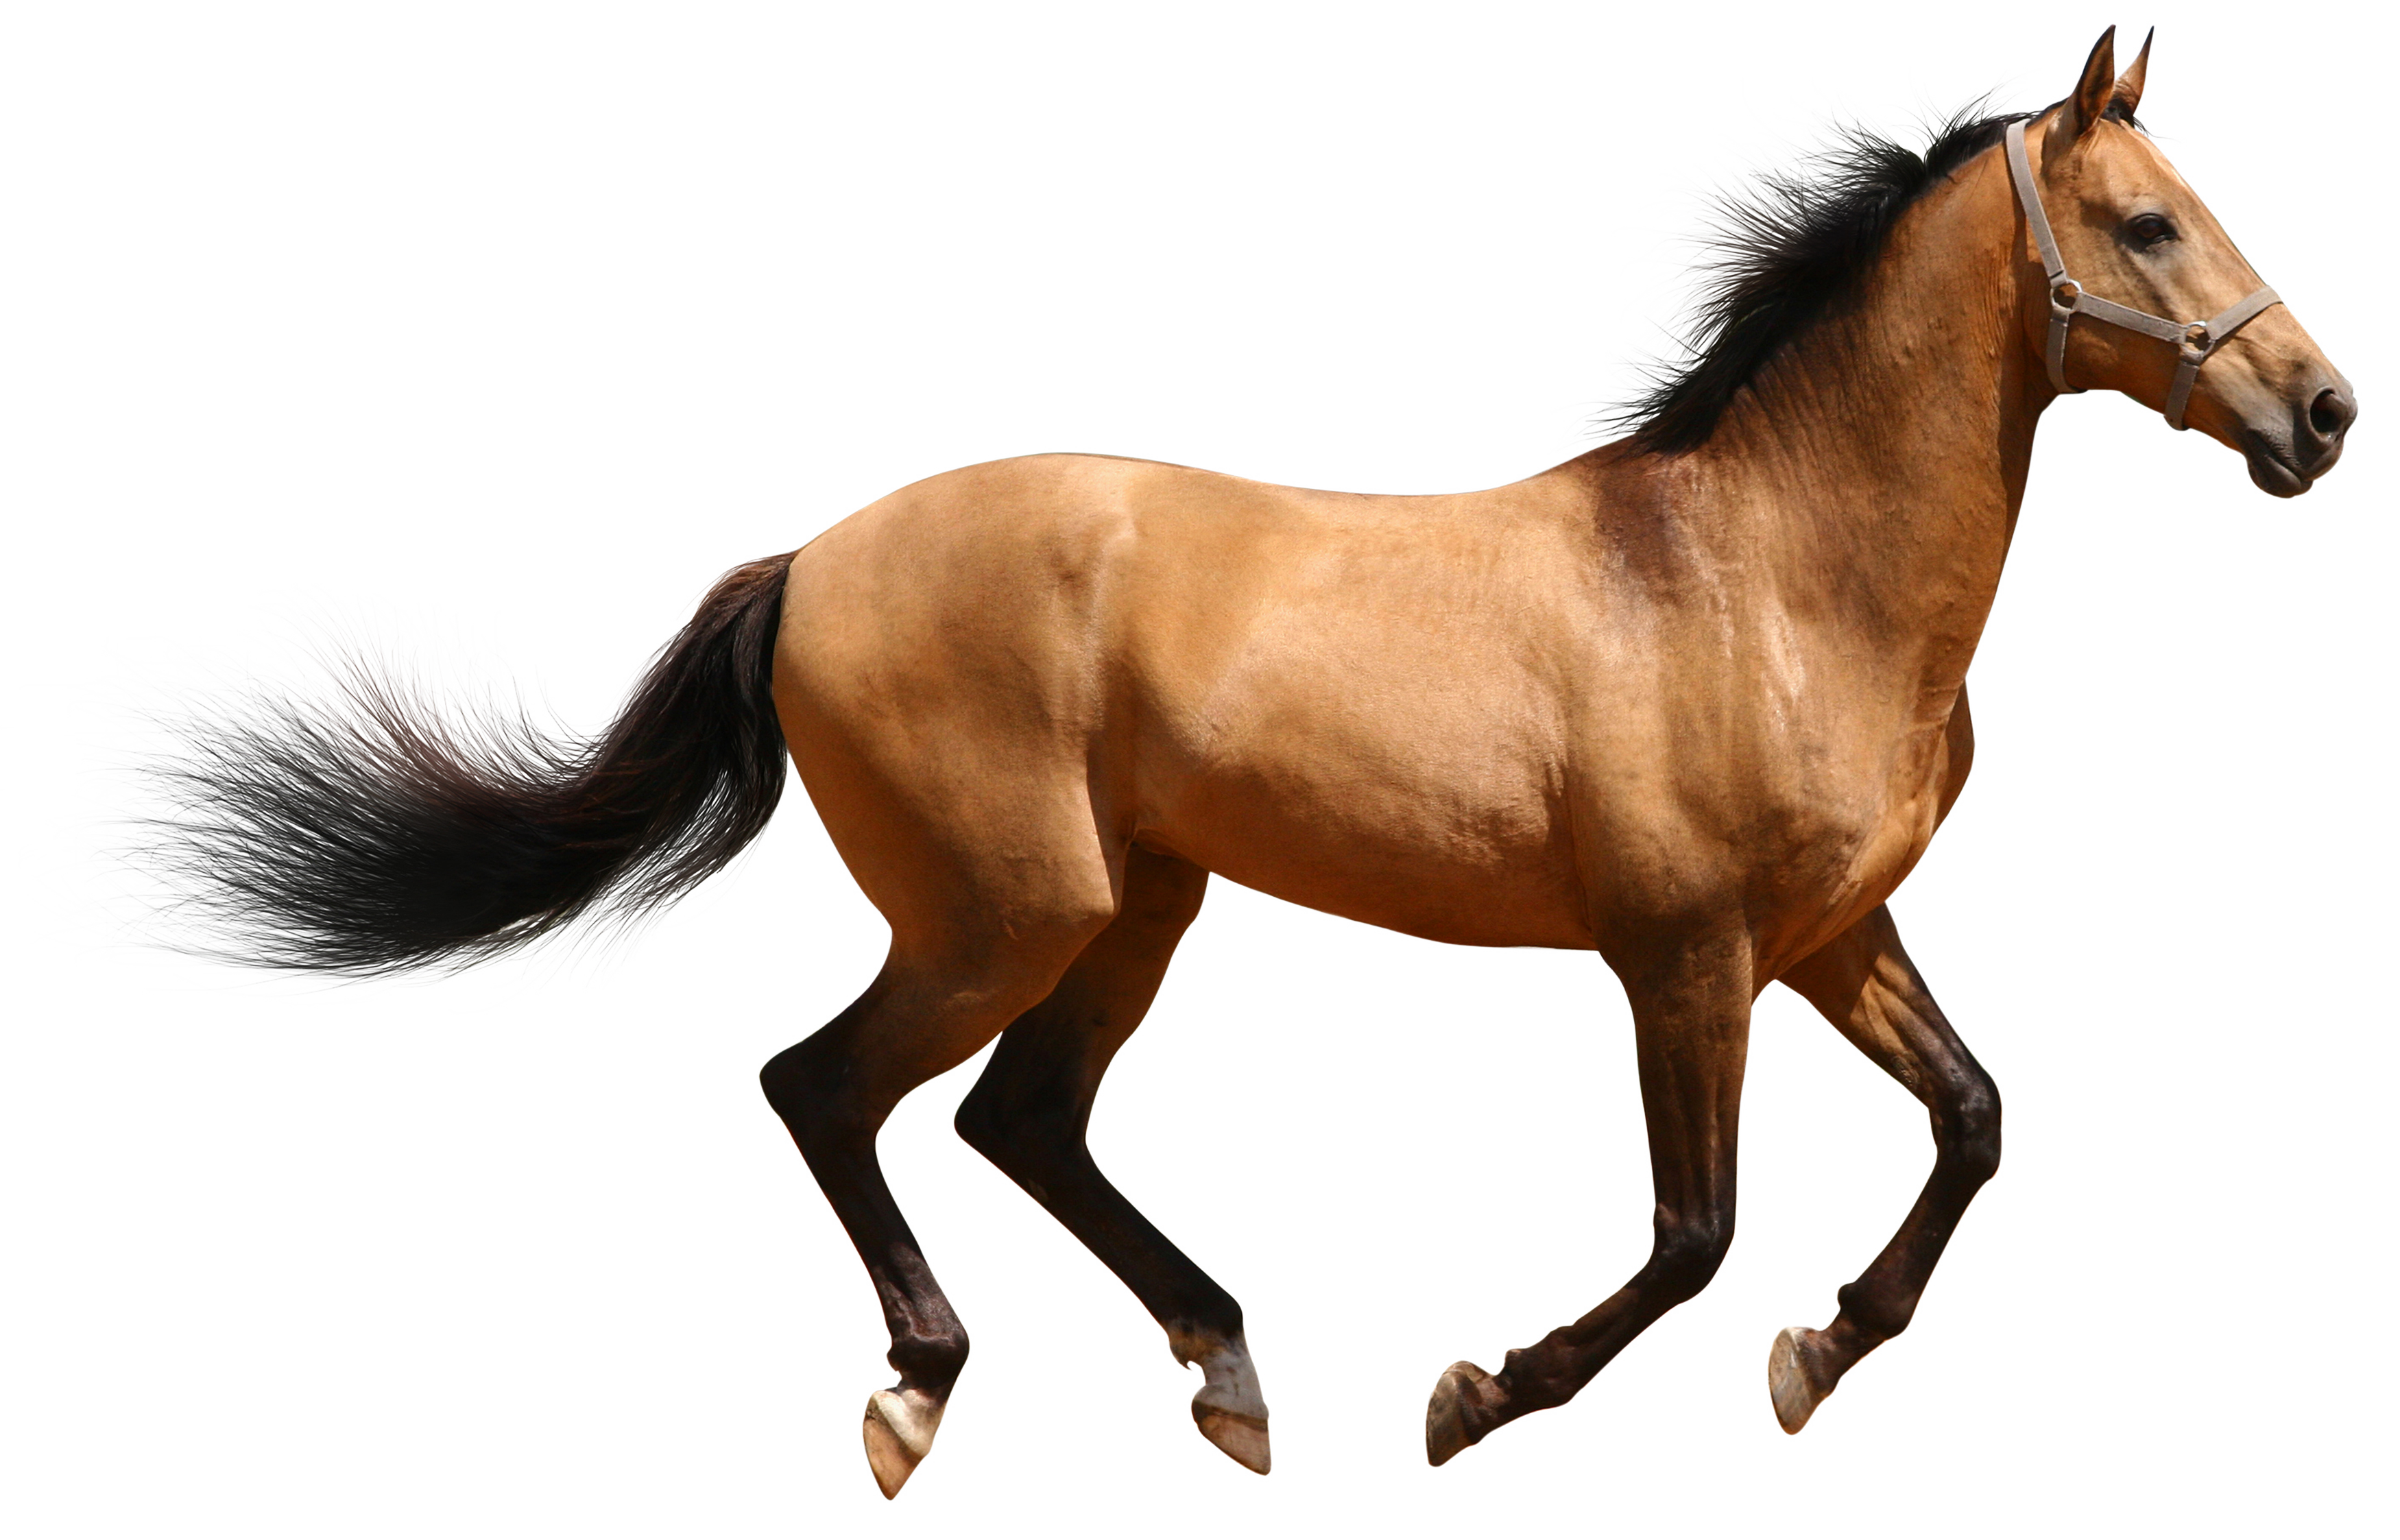 Horse Png Image #22544 - Horse, Transparent background PNG HD thumbnail